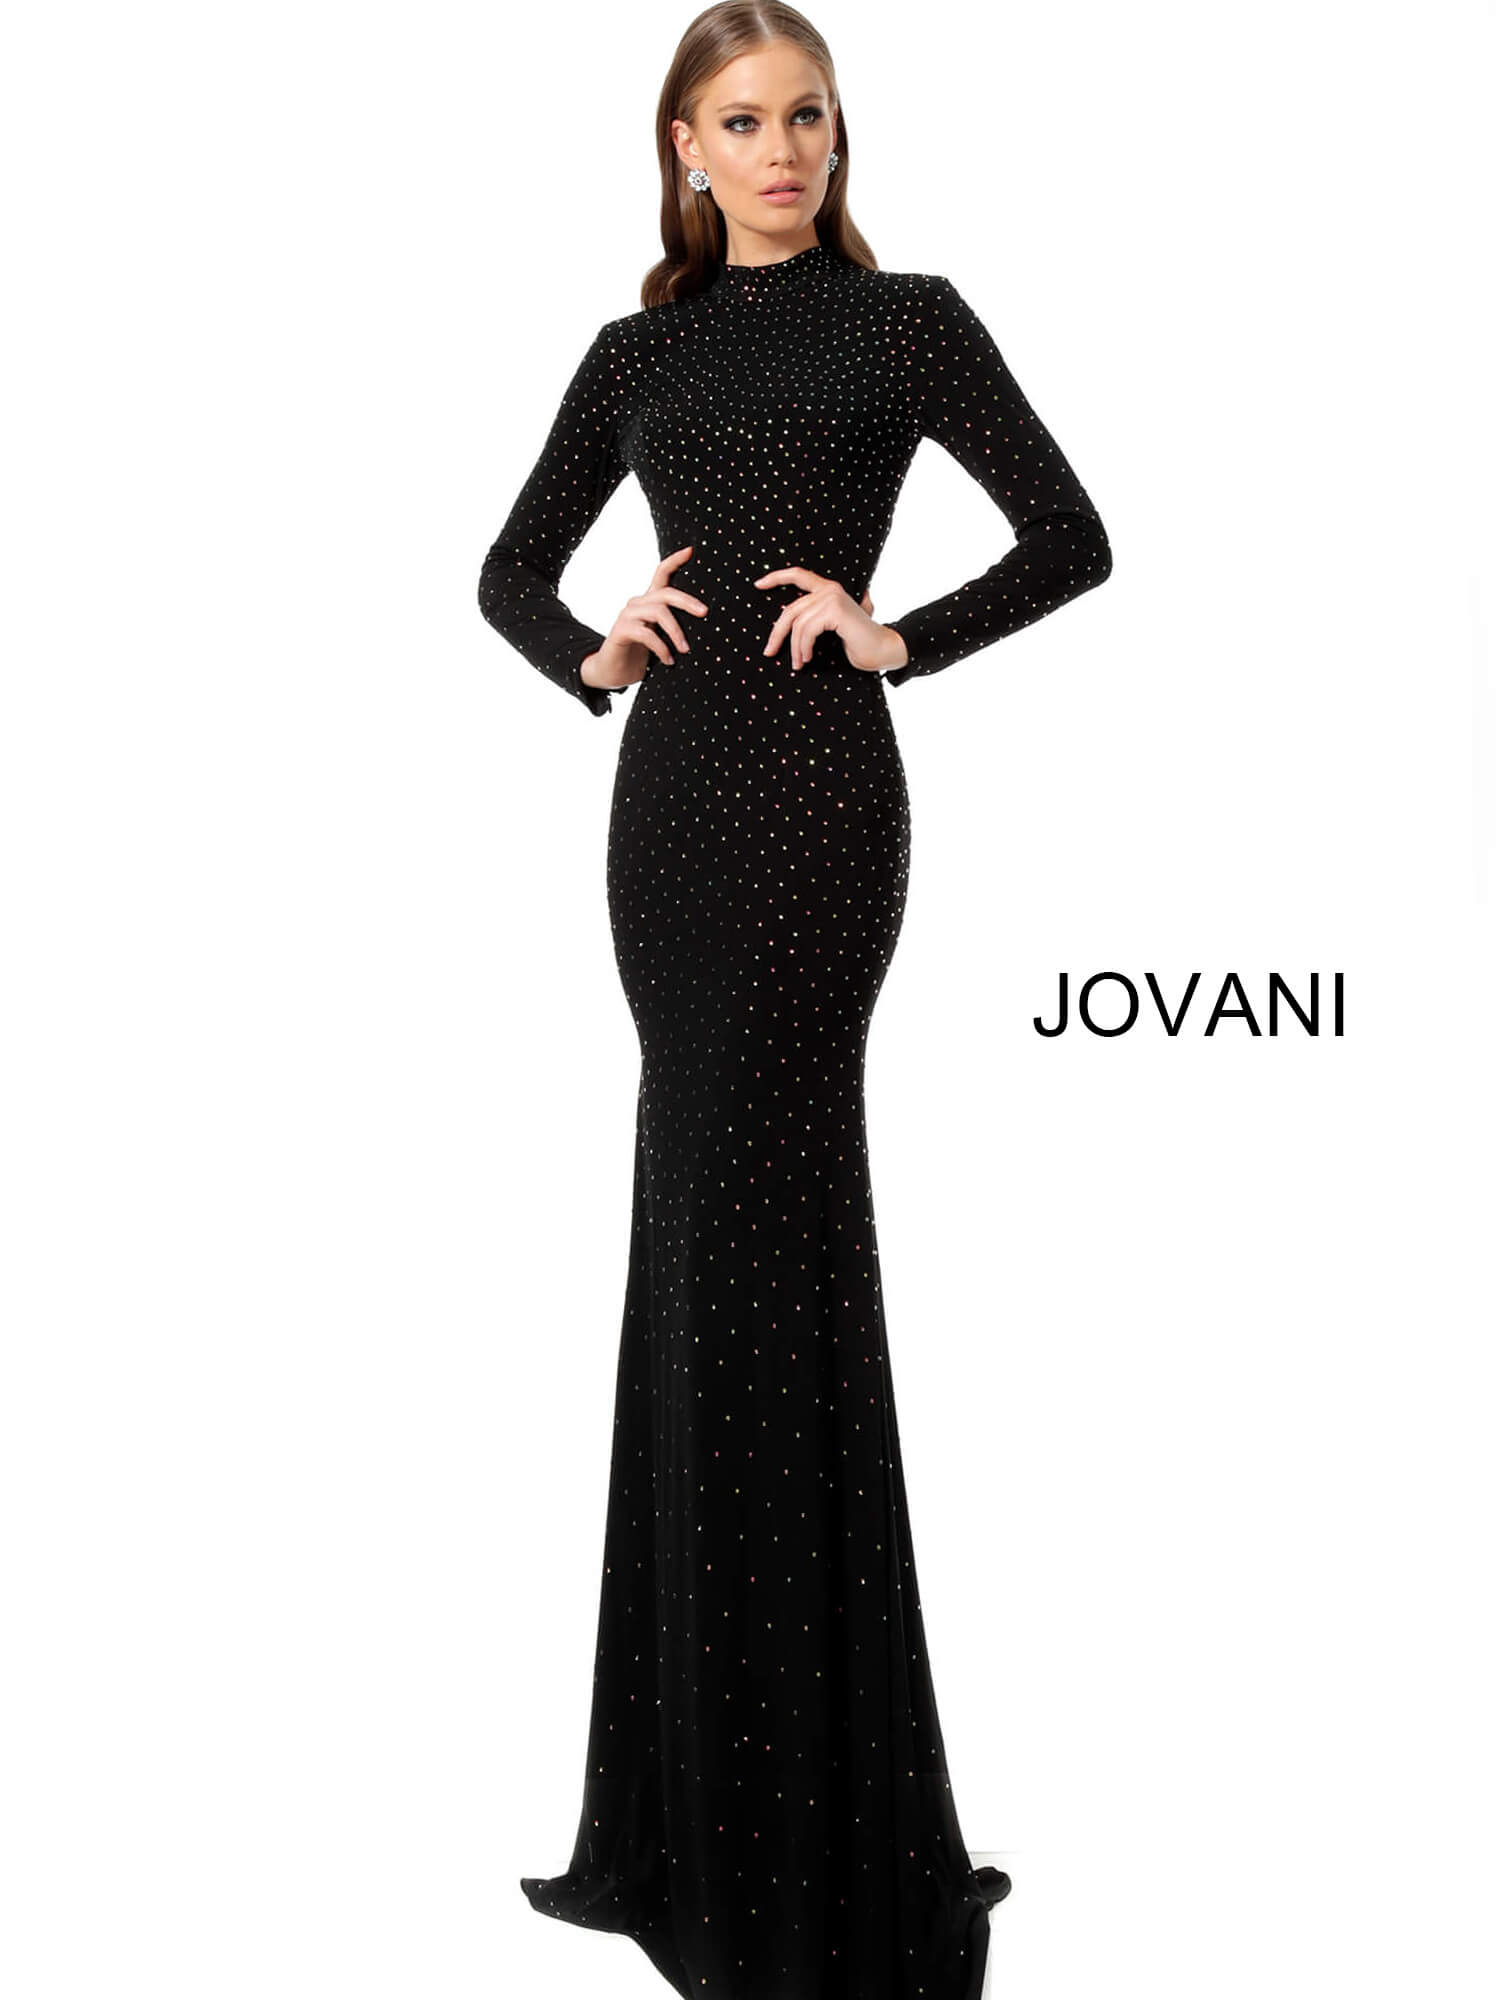 jovani Black High Neck Beaded Fitted Jovani Dress 1459 on mobile 5